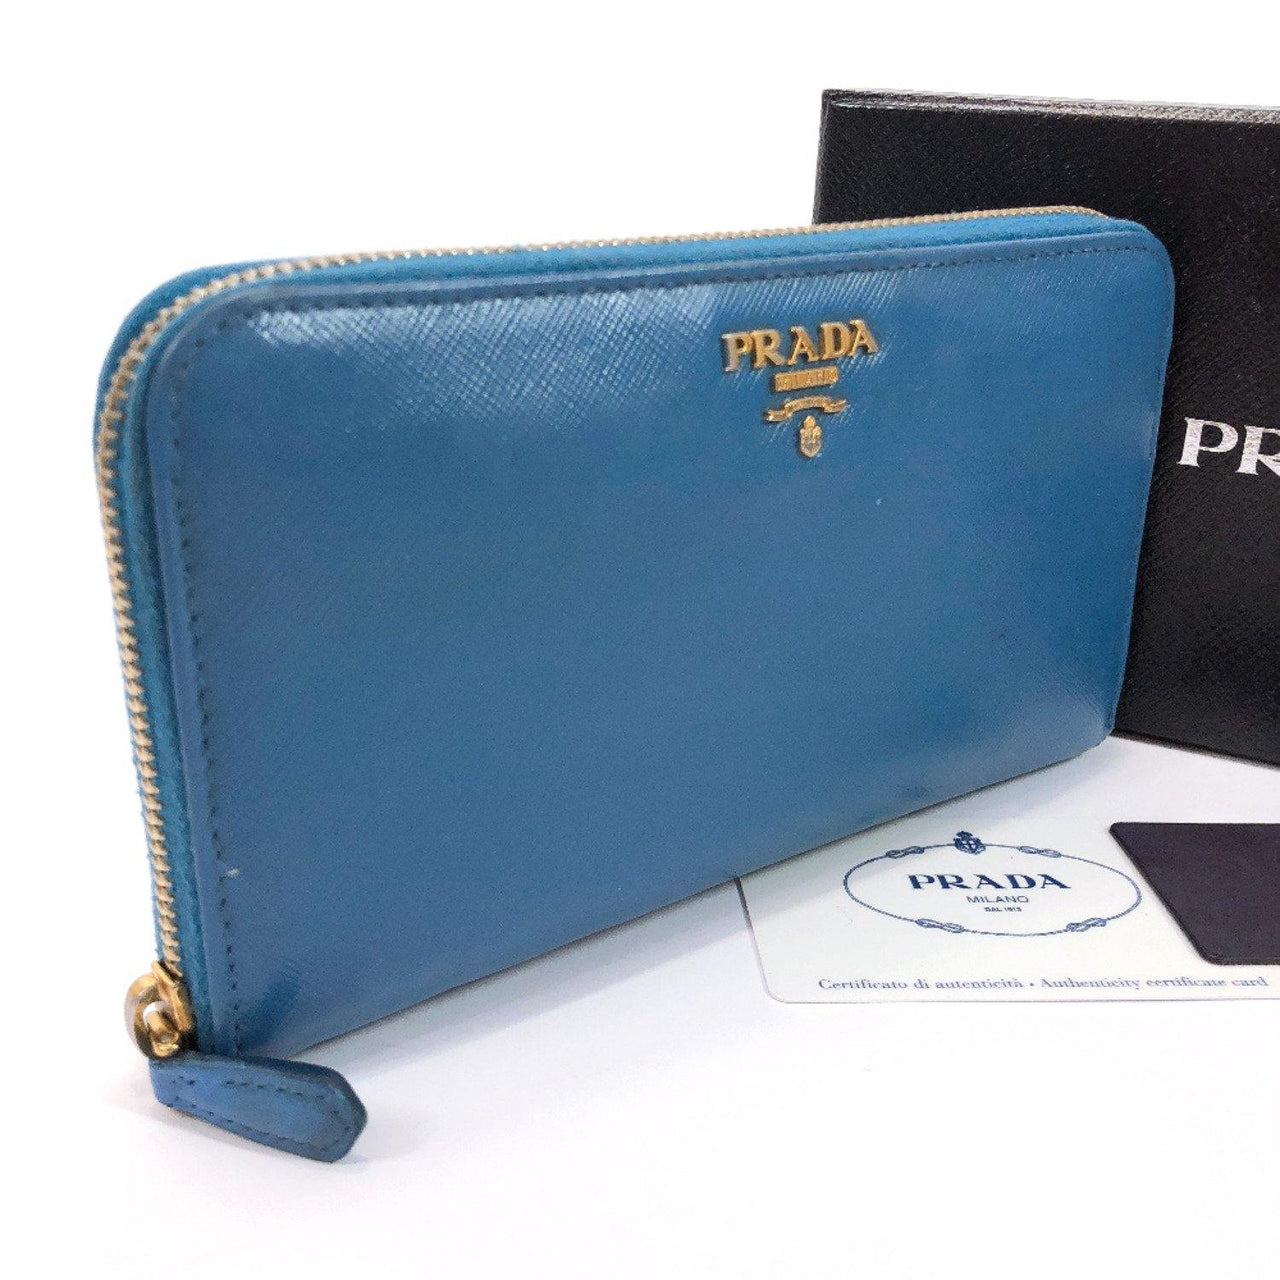 PRADA purse 1M0506 Zip Around Safiano leather Navy gold Women Used - JP-BRANDS.com